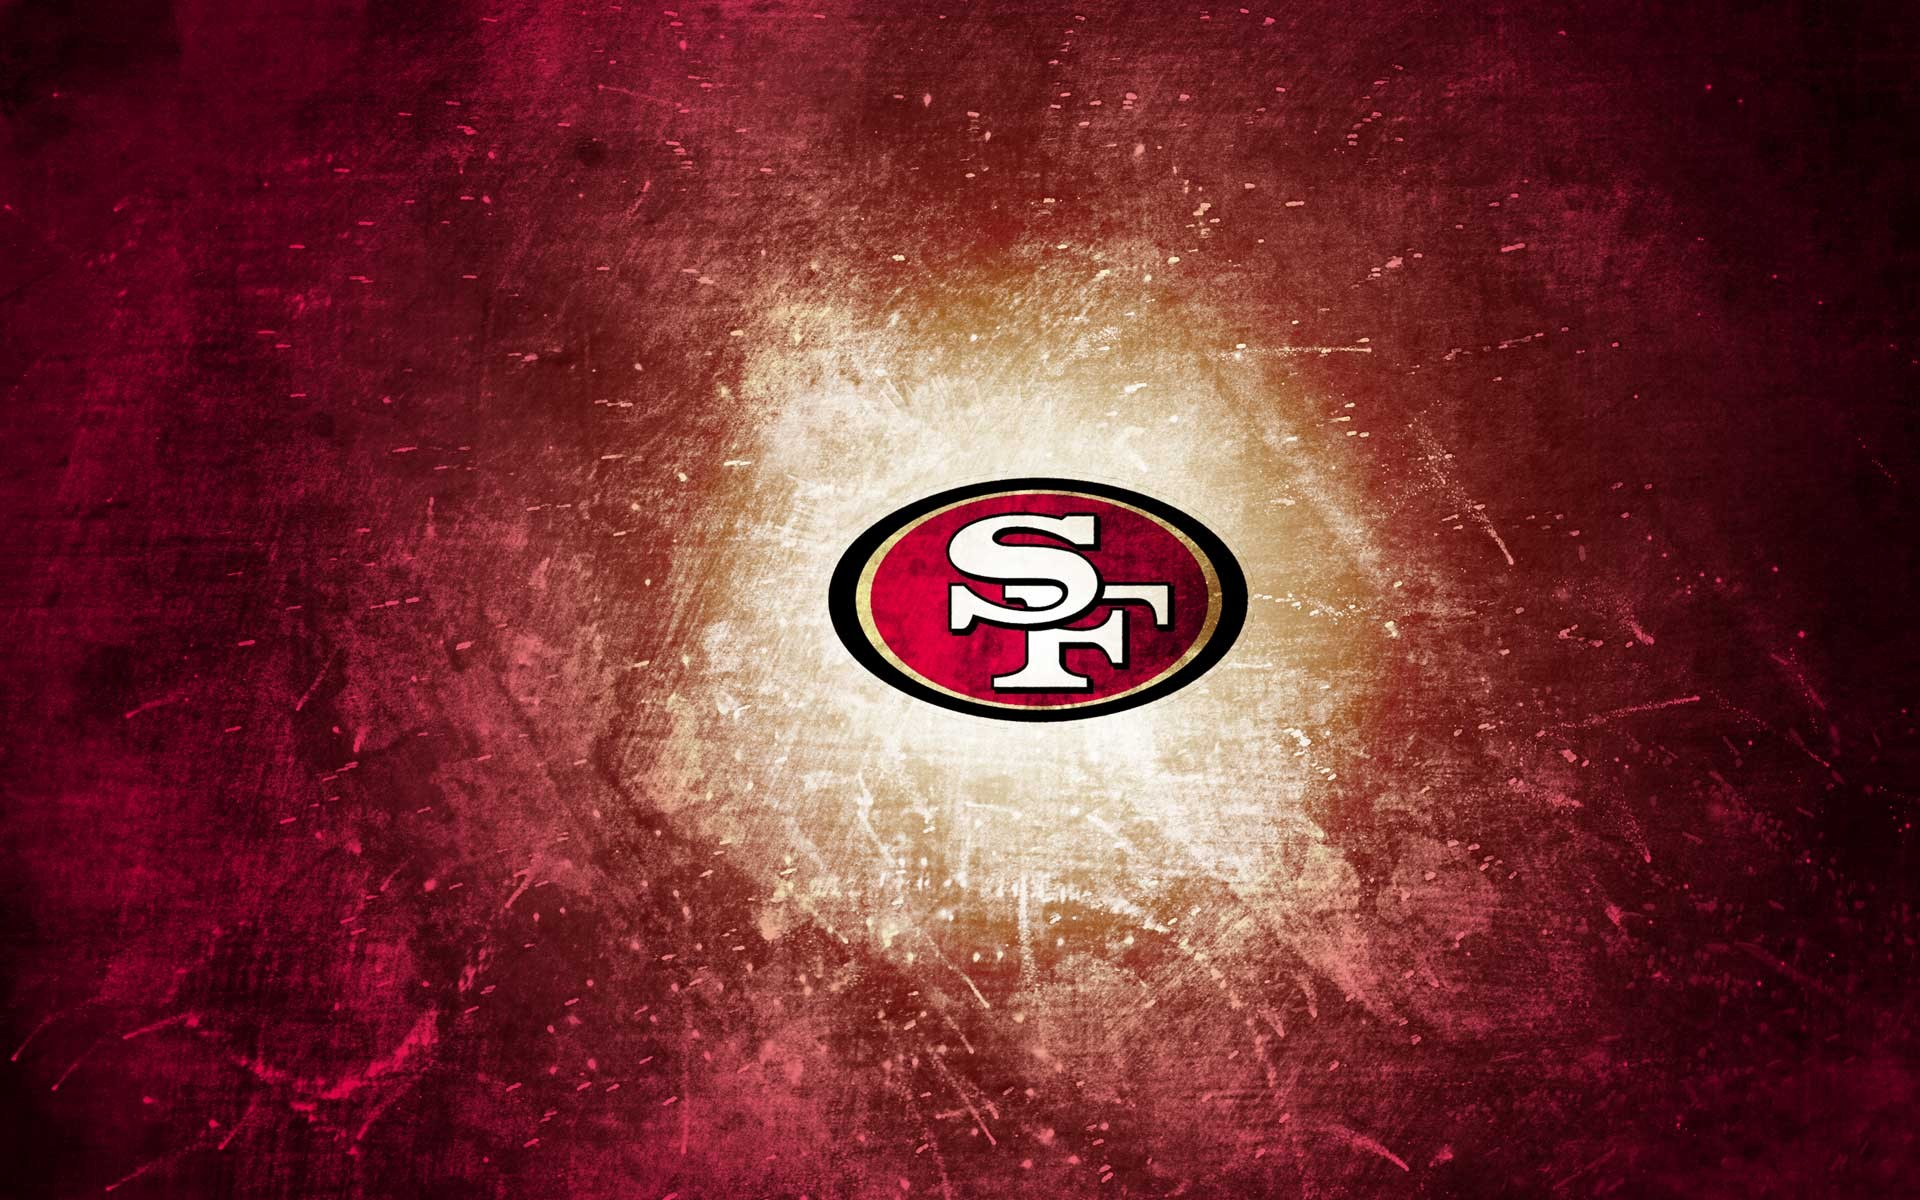 popular 49ers wallpaper 2560x1440 photo